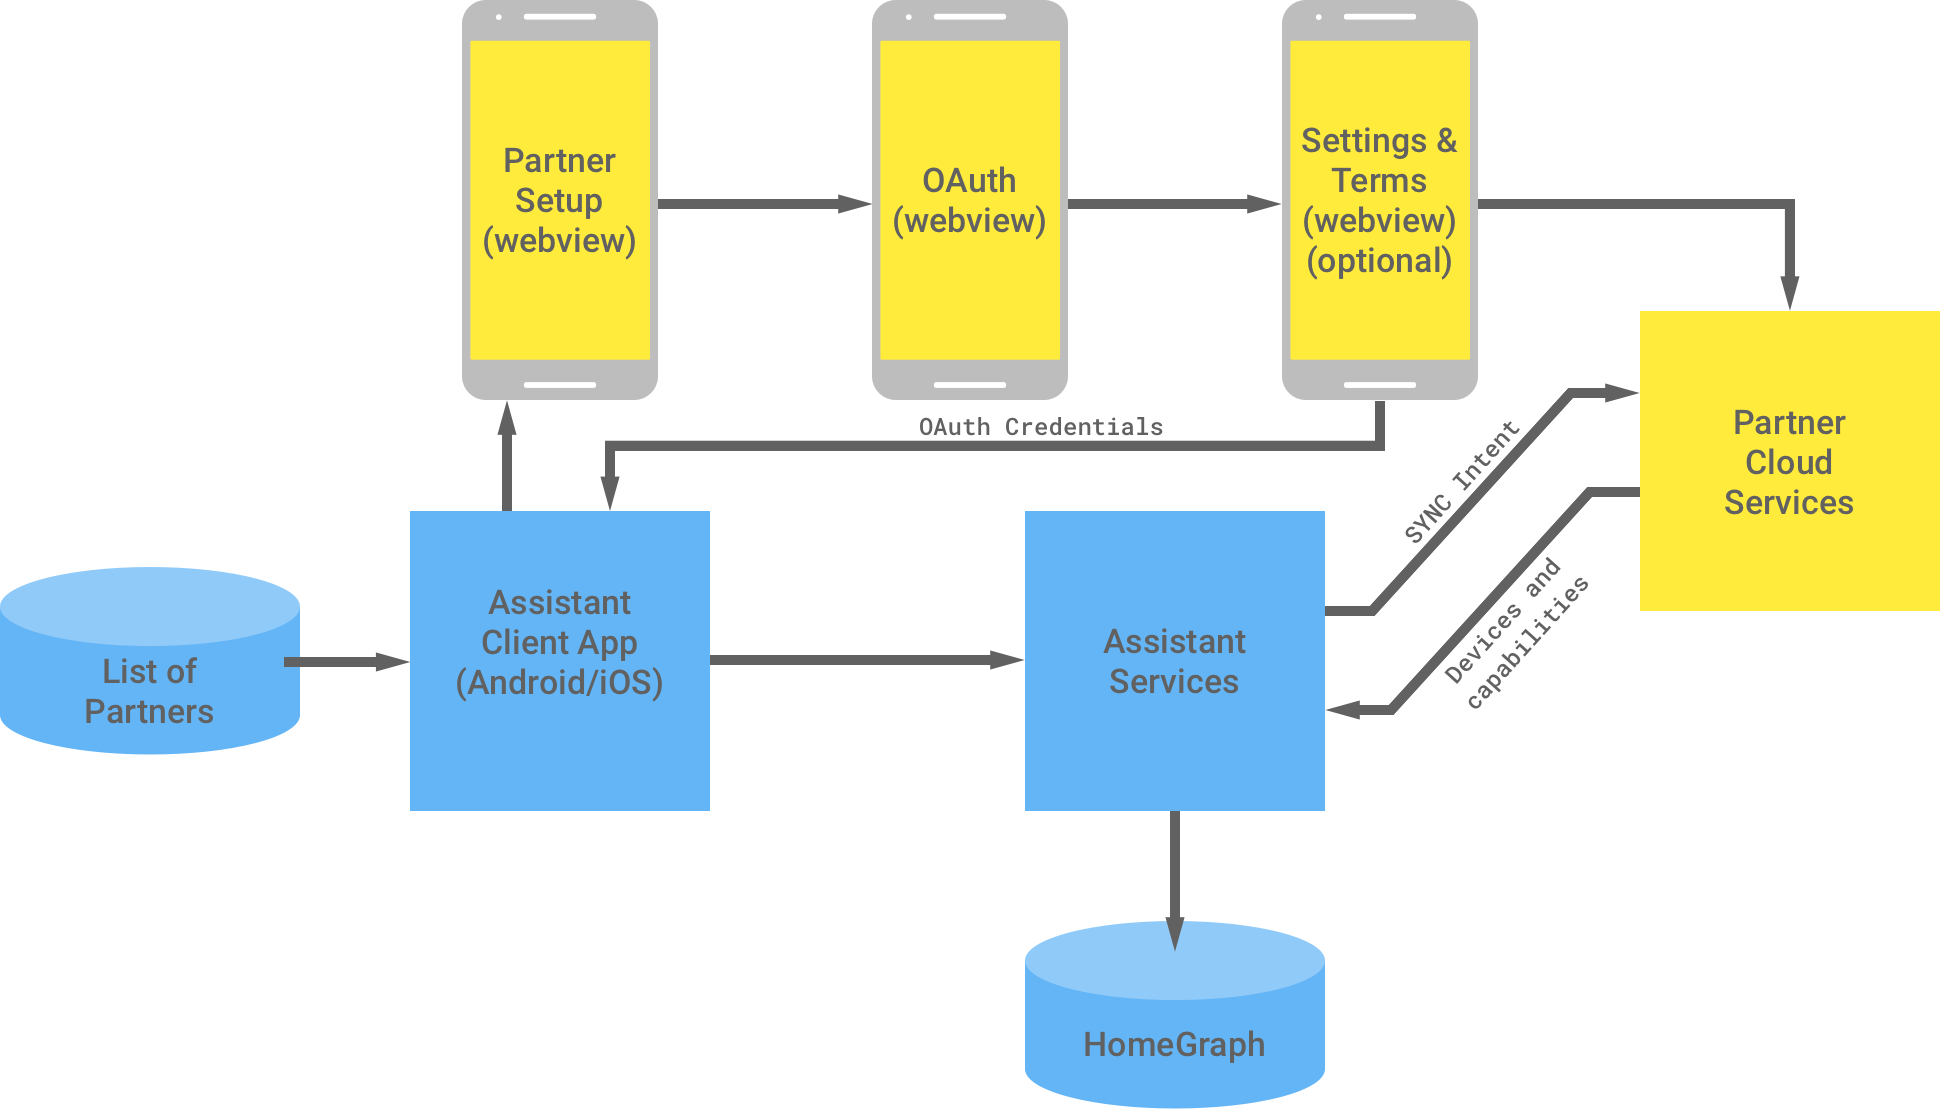 This figure shows the interaction between the Google infrastructure     and the partner infrastructure. From the Google infrastructure there is a     list of partners that is available to the Assistant client app, which then     flows to the partner infrastructure to complete OAuth authentication. The OAuth     authentication on the partner side is the partner setup webview, OAuth webview,     optional settings ands terms, and partner cloud services. The partner infrastructure,     then returns the OAuth credentials to the Assistant client app. The partner     cloud services sends available devices and capabilities to Assistant services,     which then stores the information in the Home Graph.